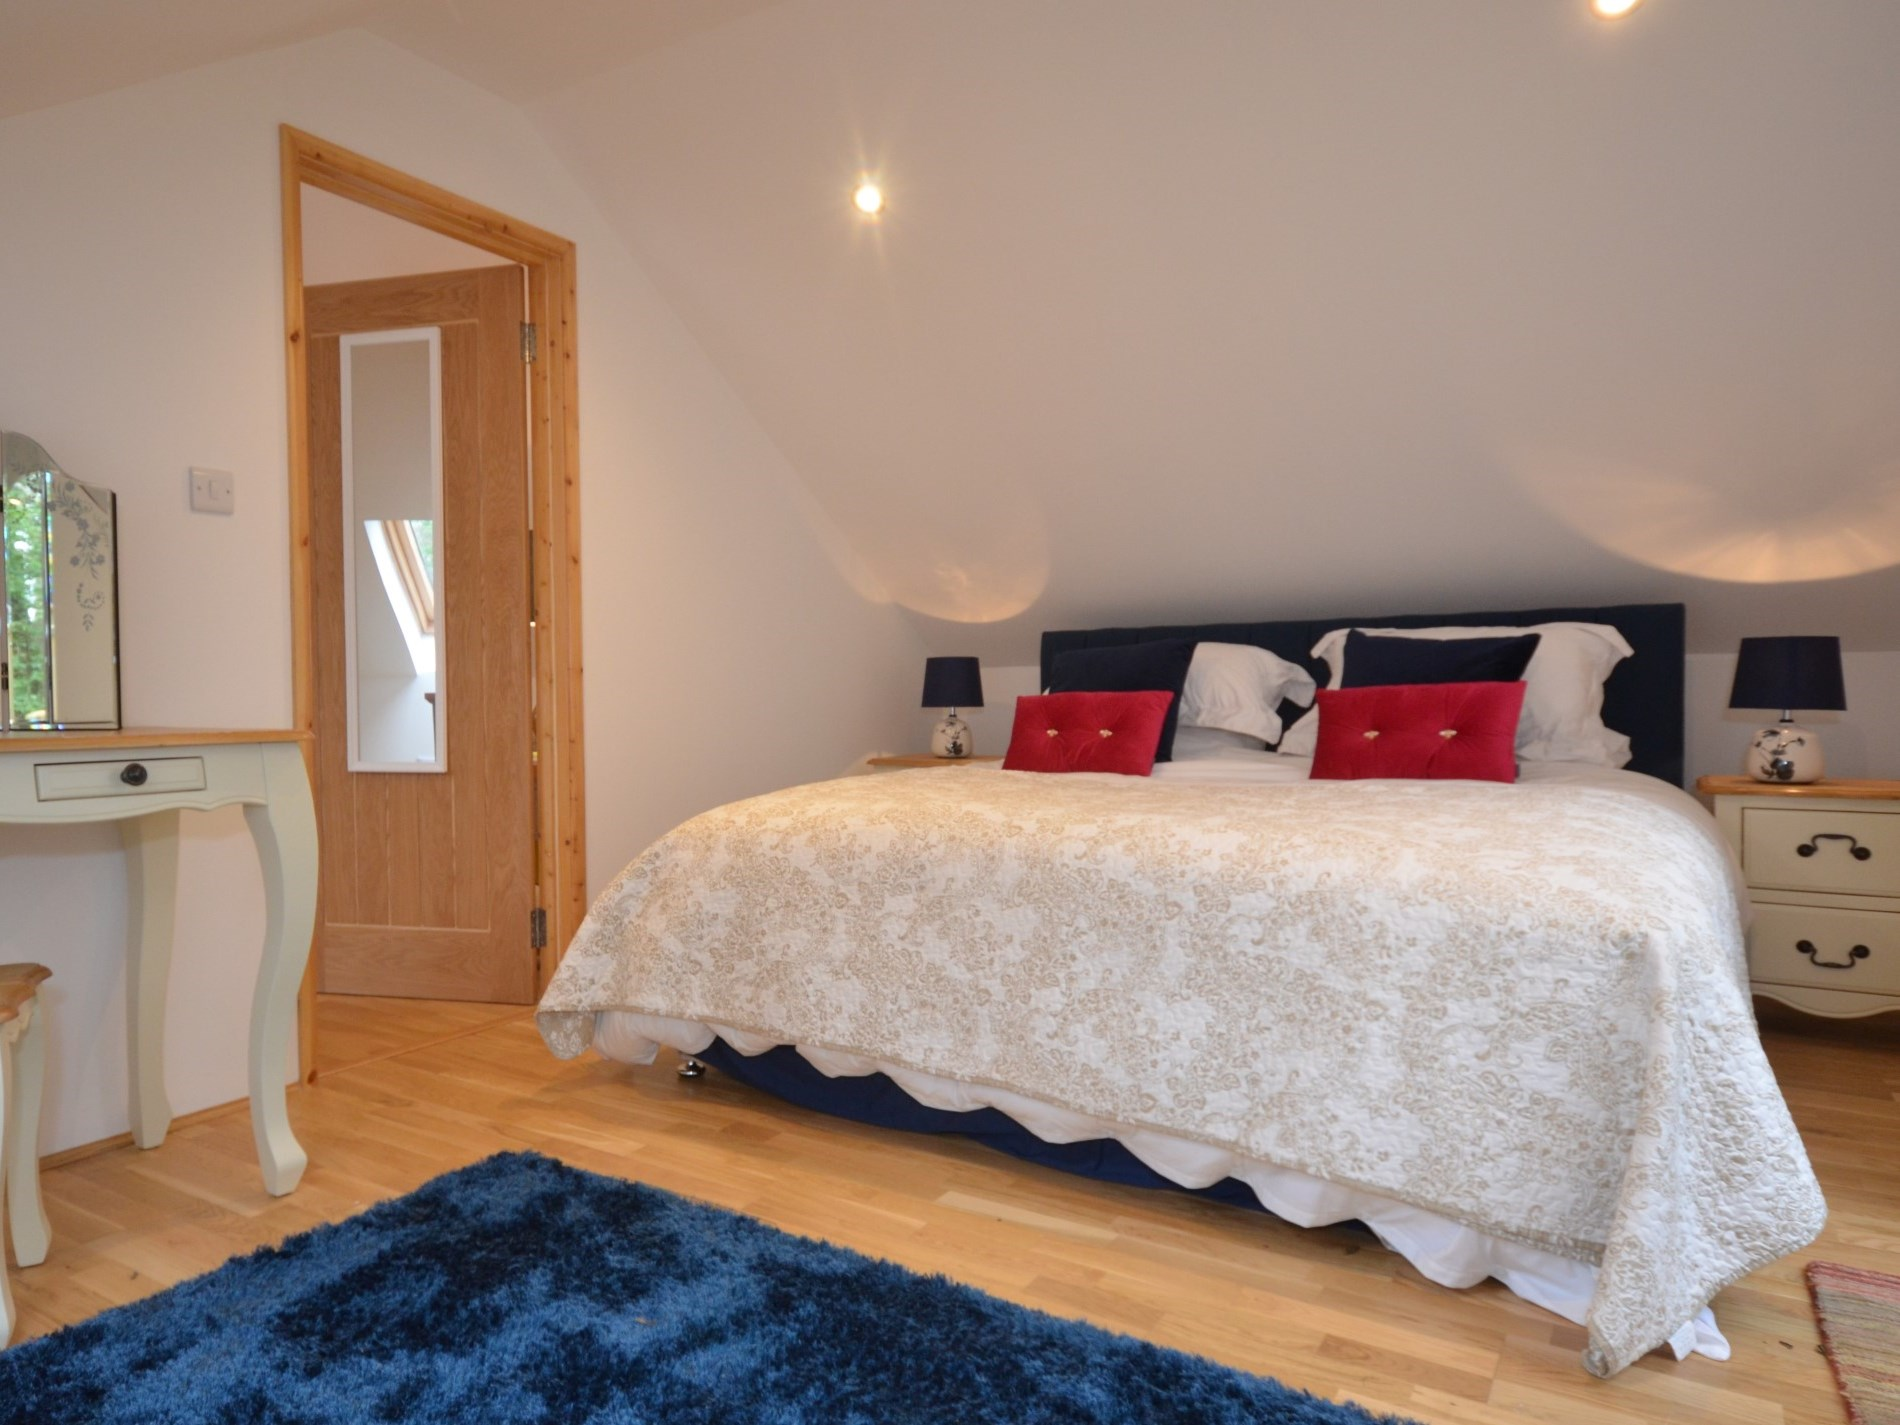 1 Bedroom Cottage in Newquay, Cornwall